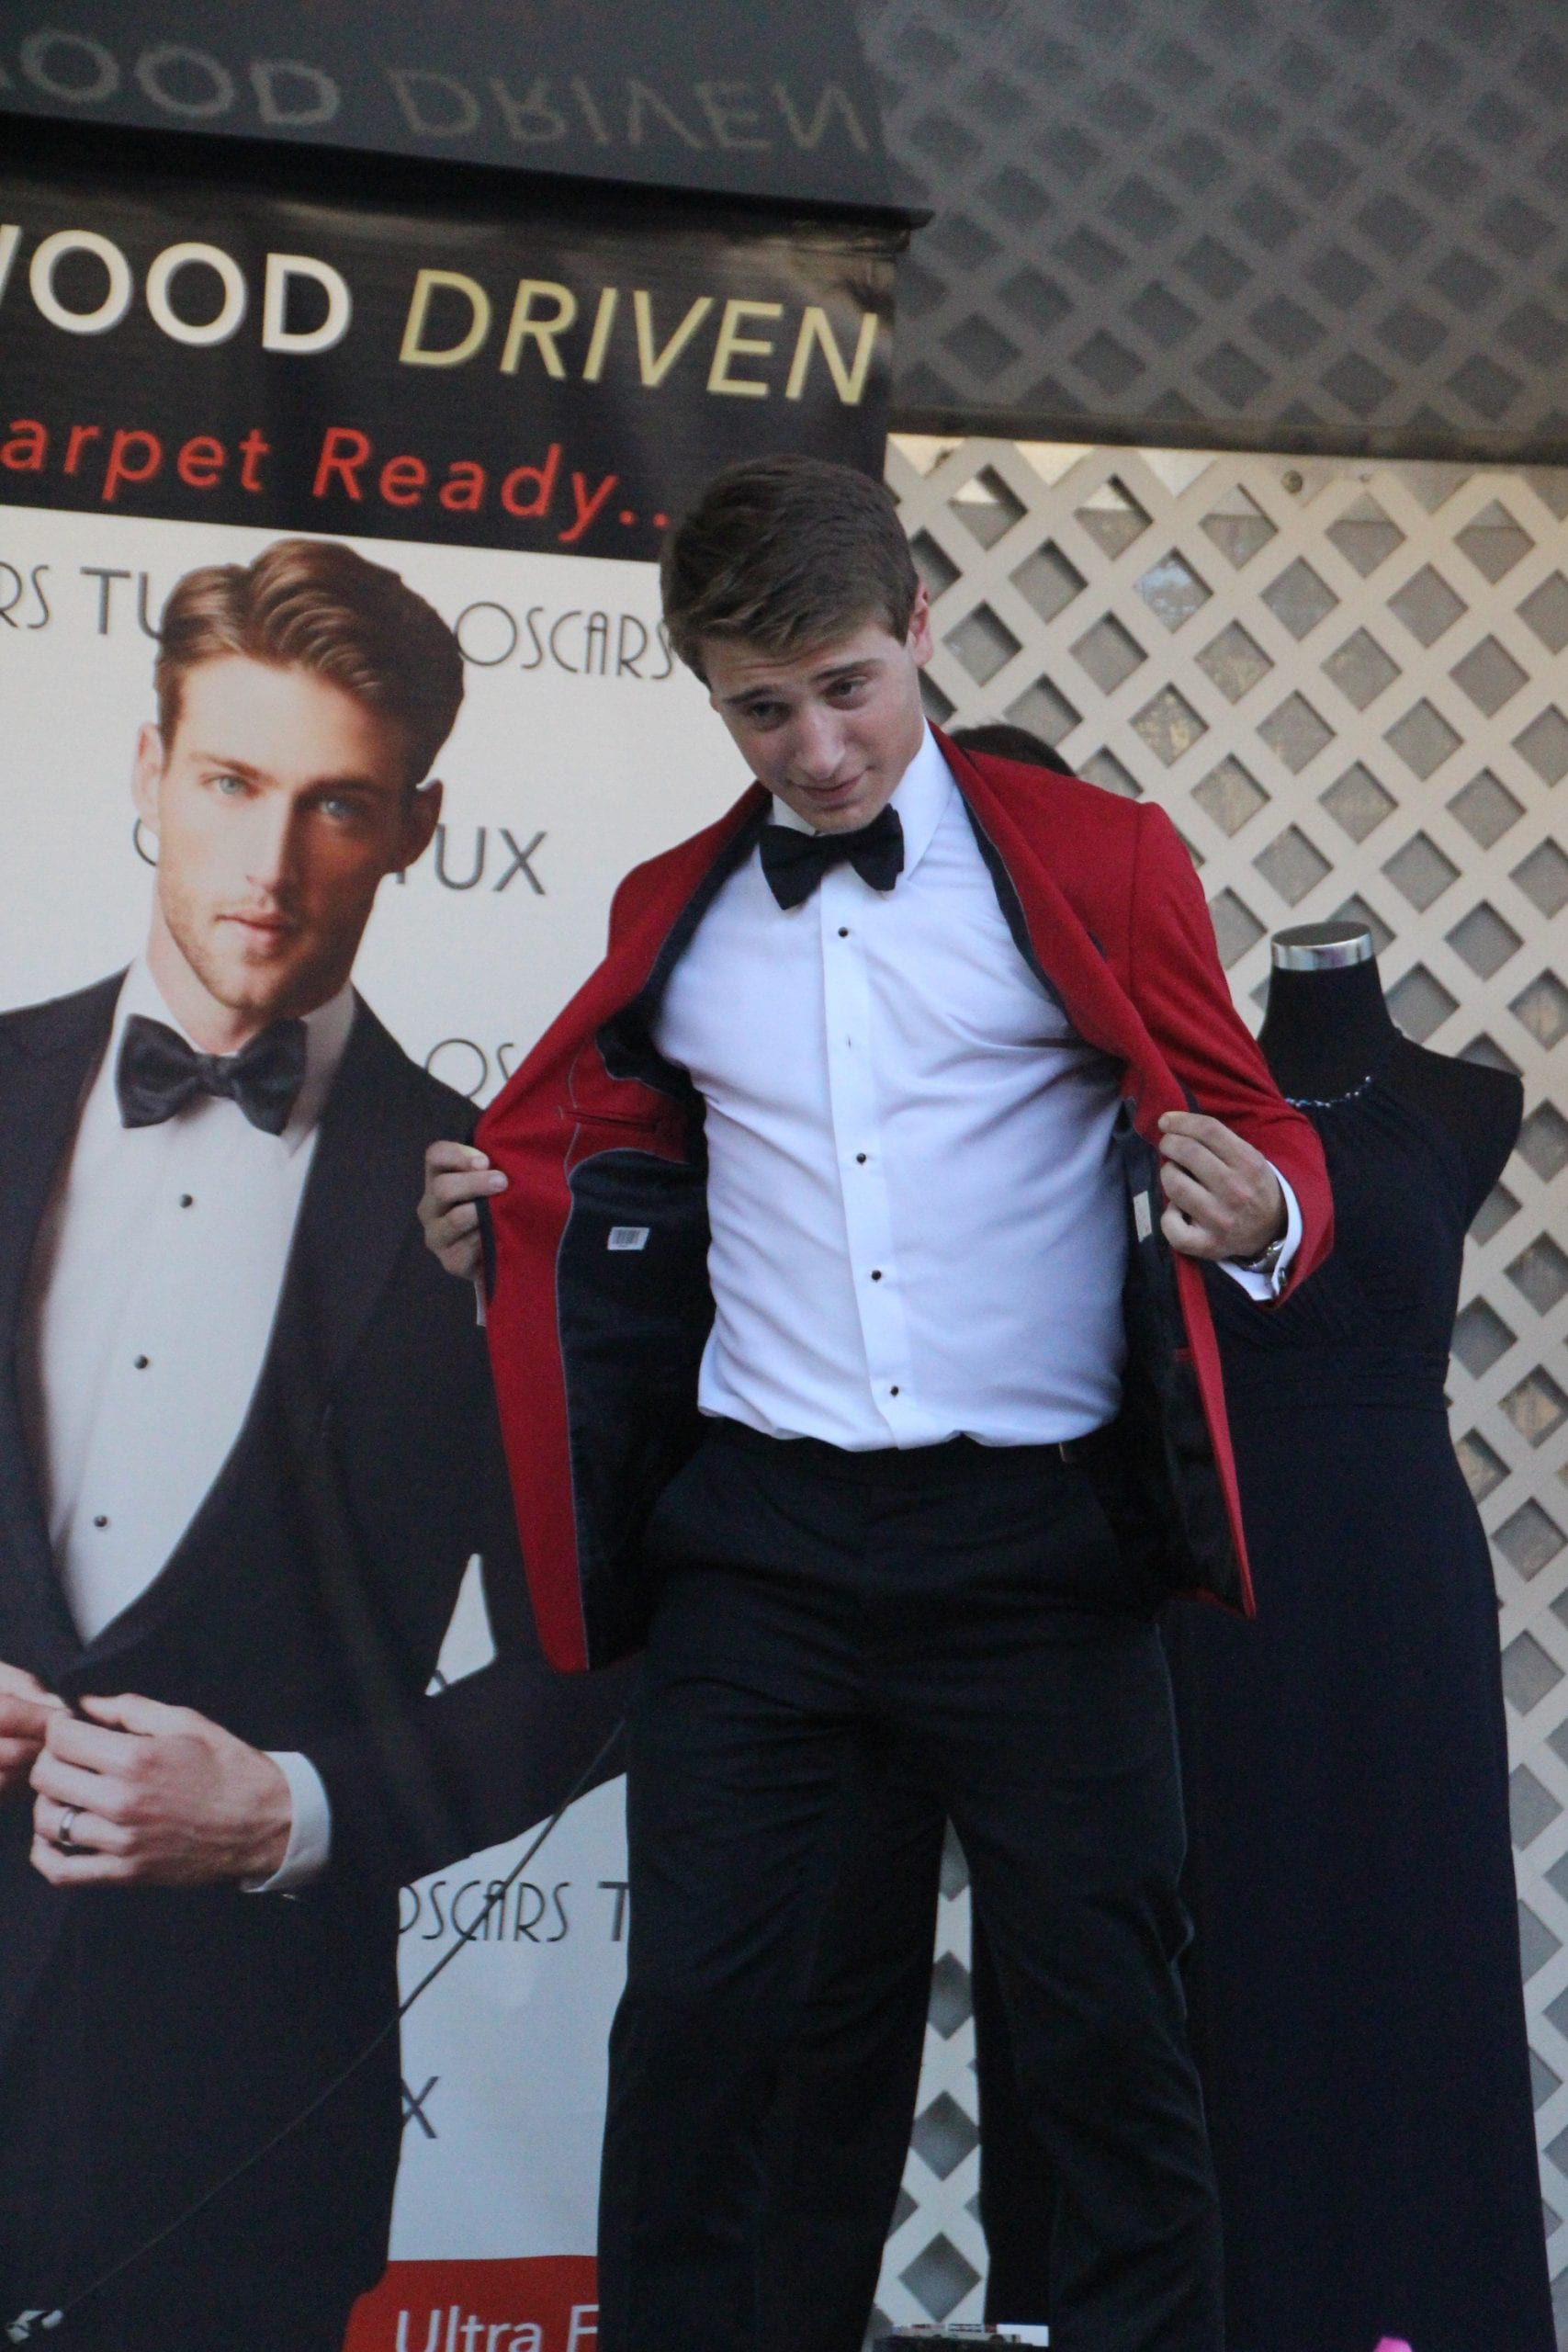 Fashion Show, featuring Oscars TUX, kicks off the Sale Days in West Hartford Center on the Town of West Hartford Showmobile stage on June 23, 2016. Photo credit: Dylan Carneiro